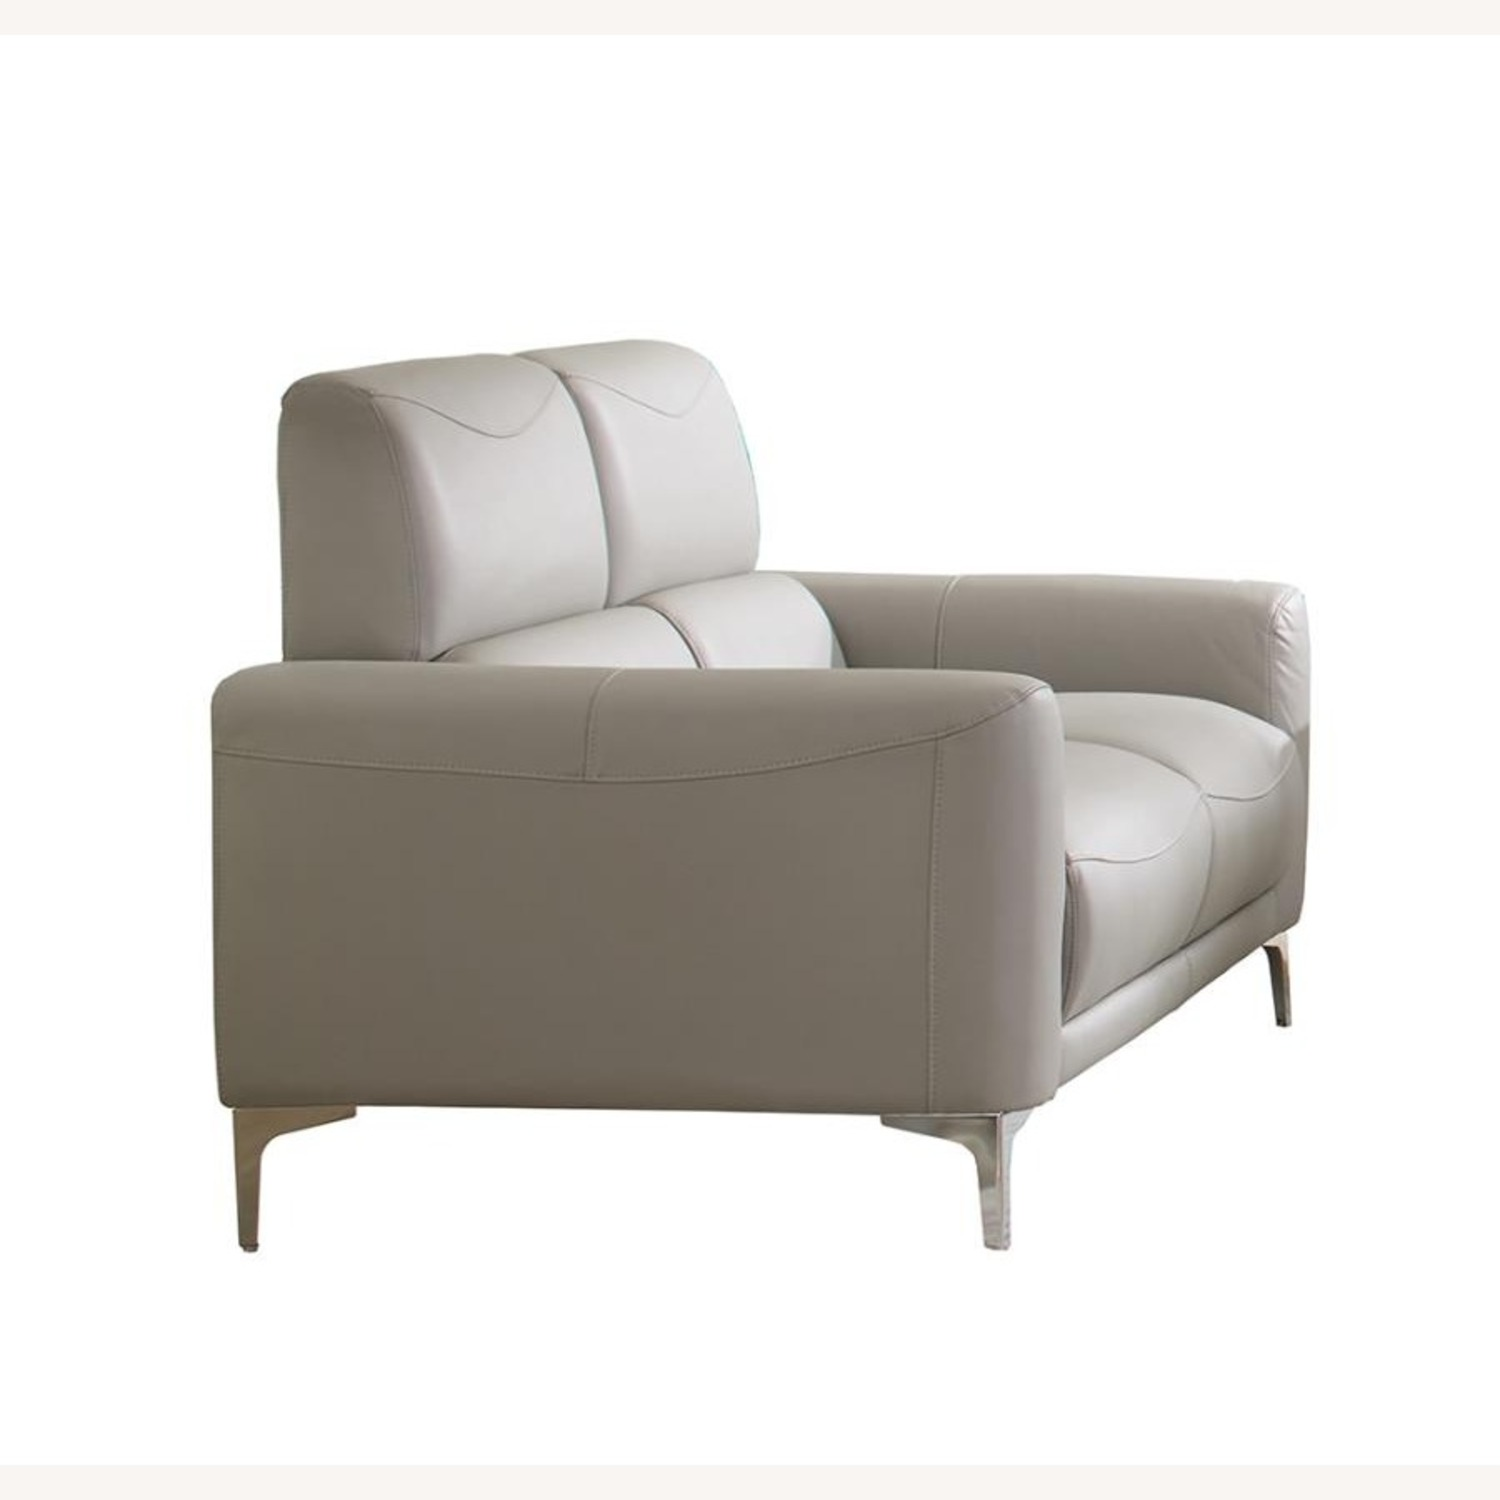 Loveseat In Soft Taupe Leatherette Upholstery - image-1